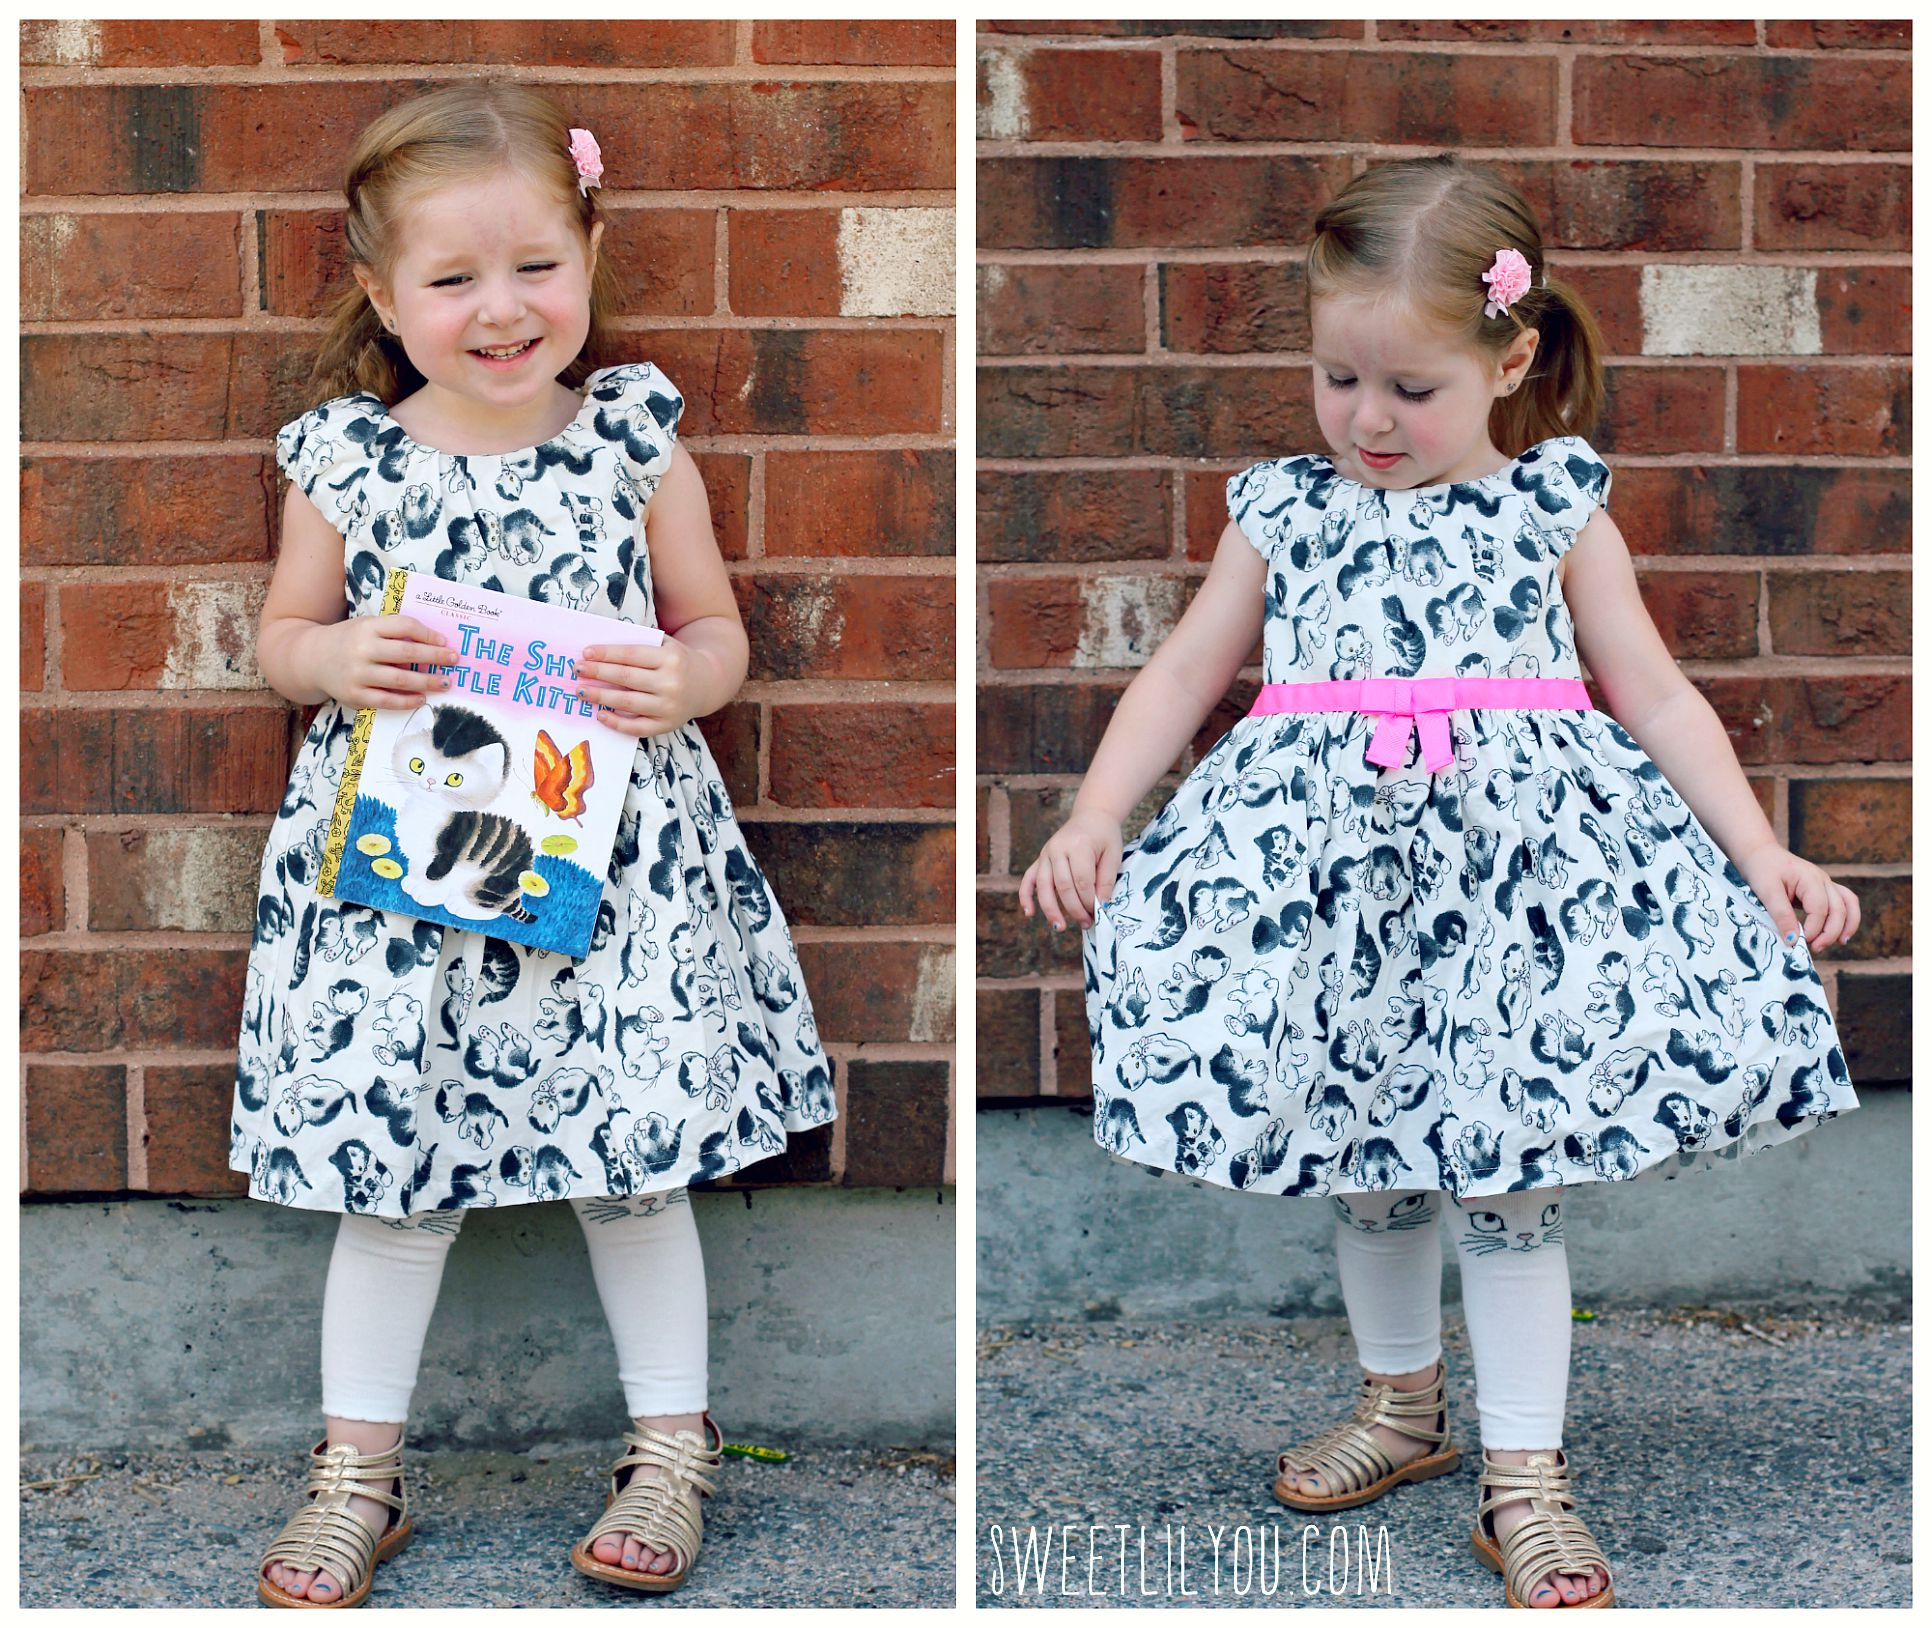 Microfashion Monday: The Shy Little Kitten at Target - sweet lil you